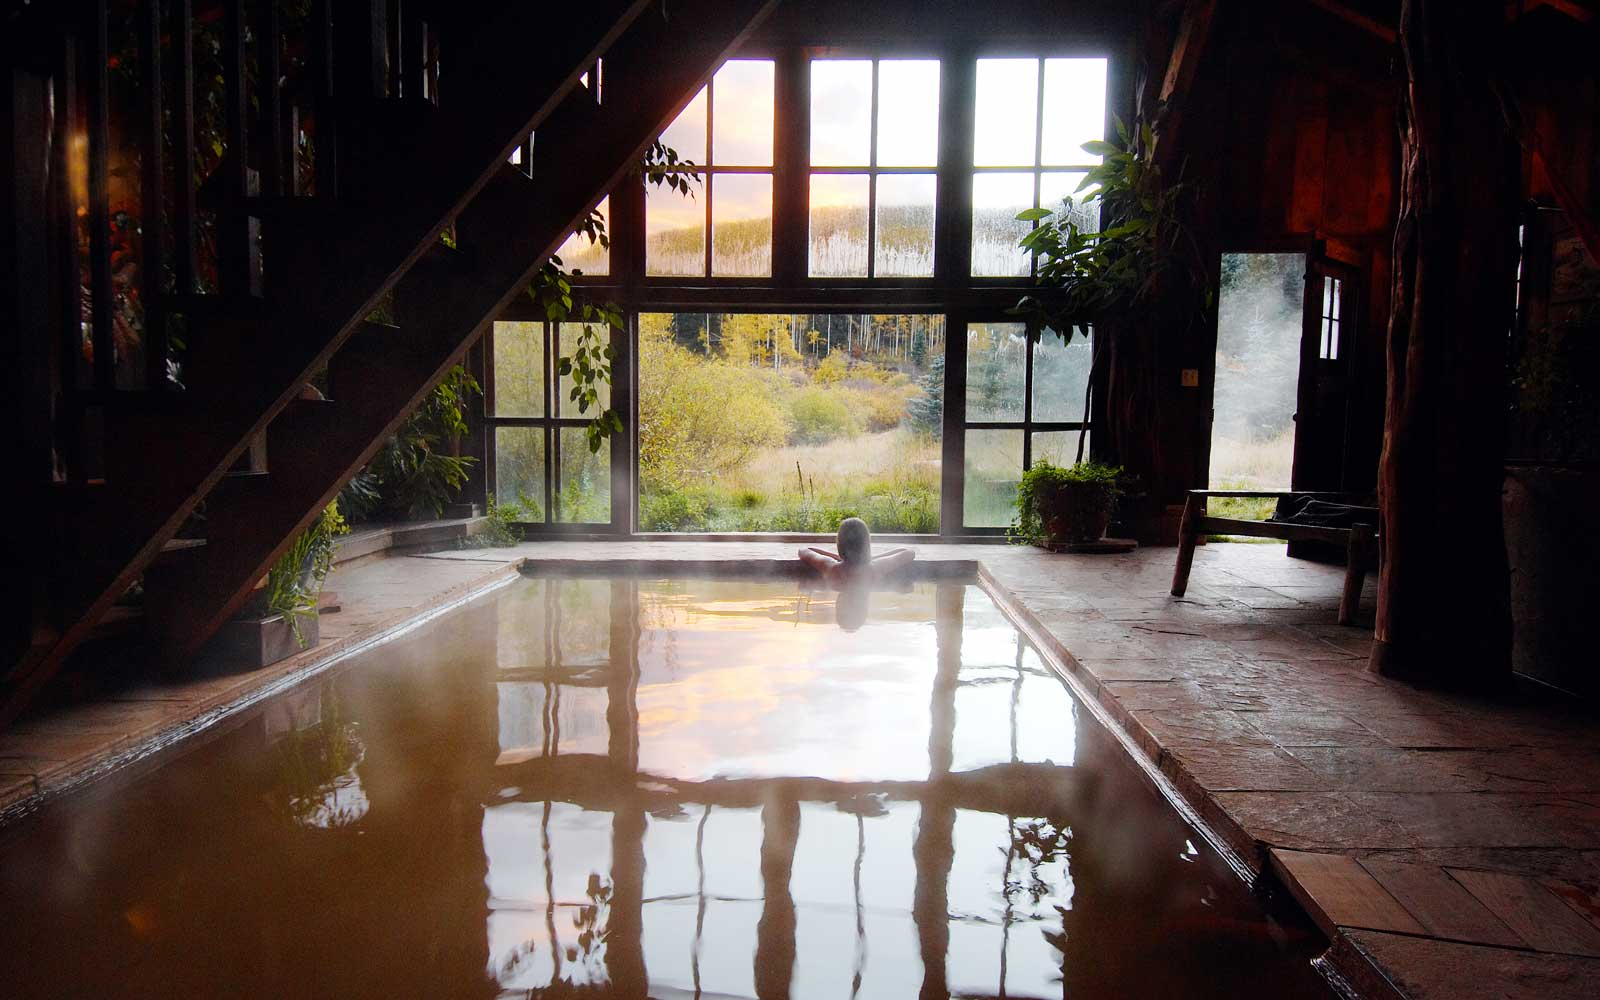 View from inside the bath house at Dunton Hot Springs, Colorado horizonasia